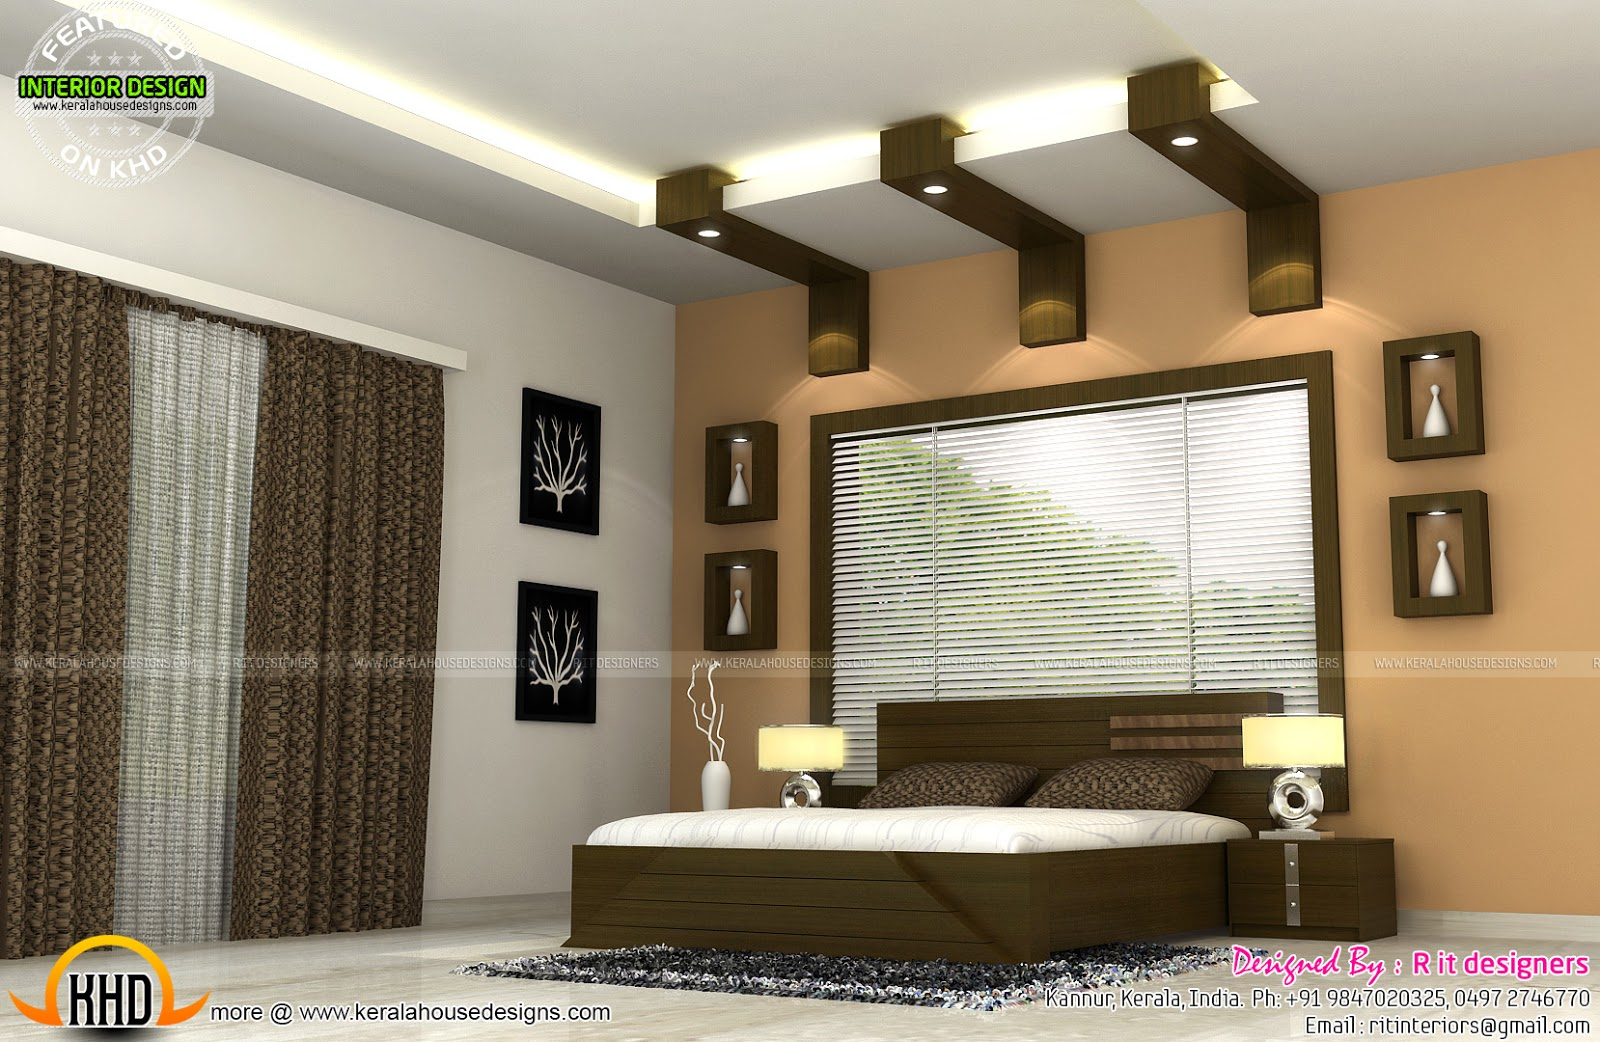 Interiors of bedrooms and kitchen kerala home design and for Home plans with interior pictures